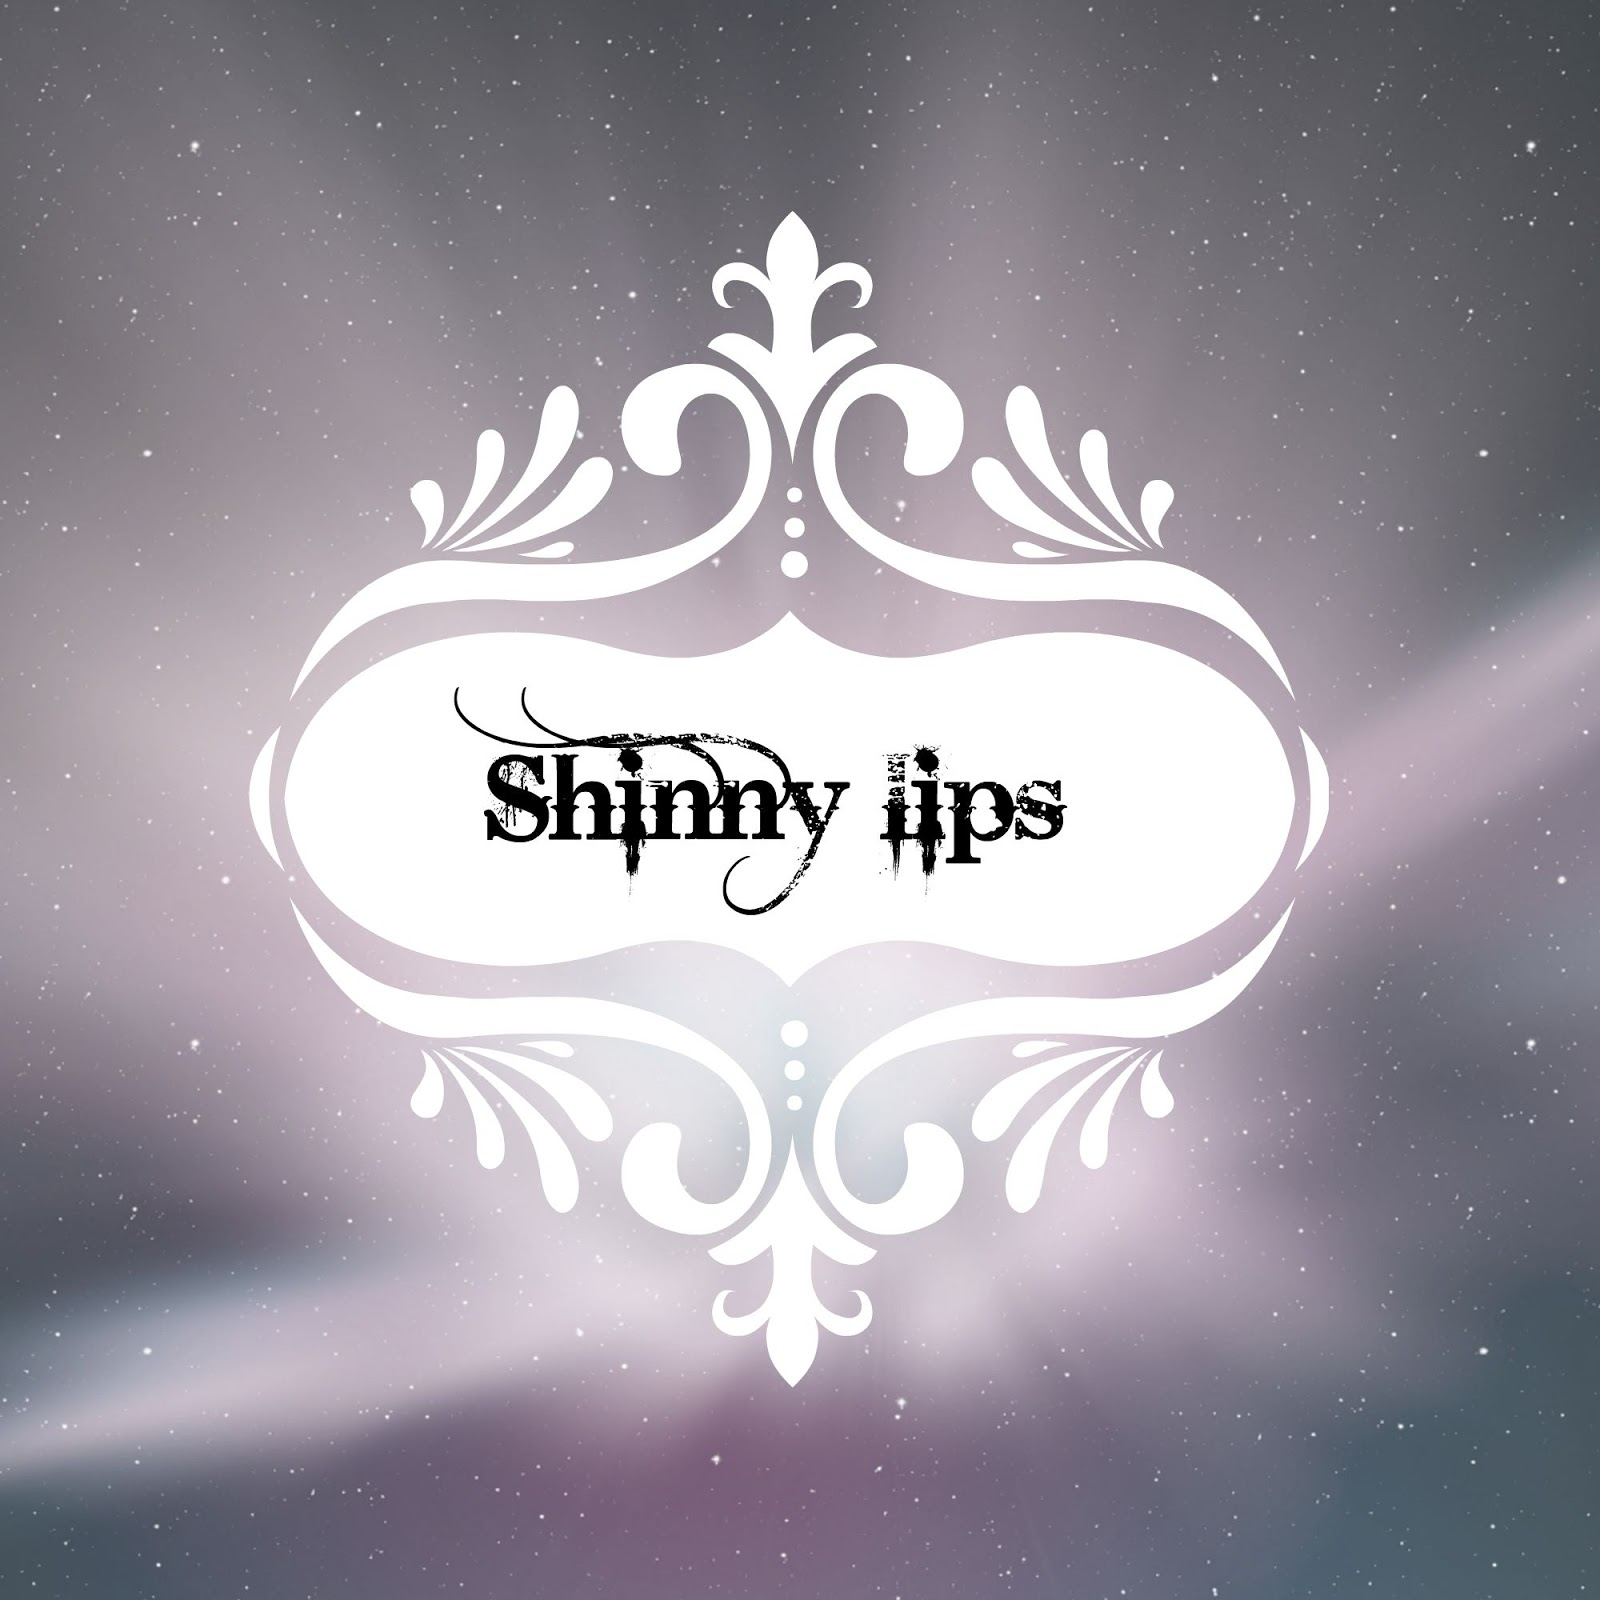 How to have shinny lips